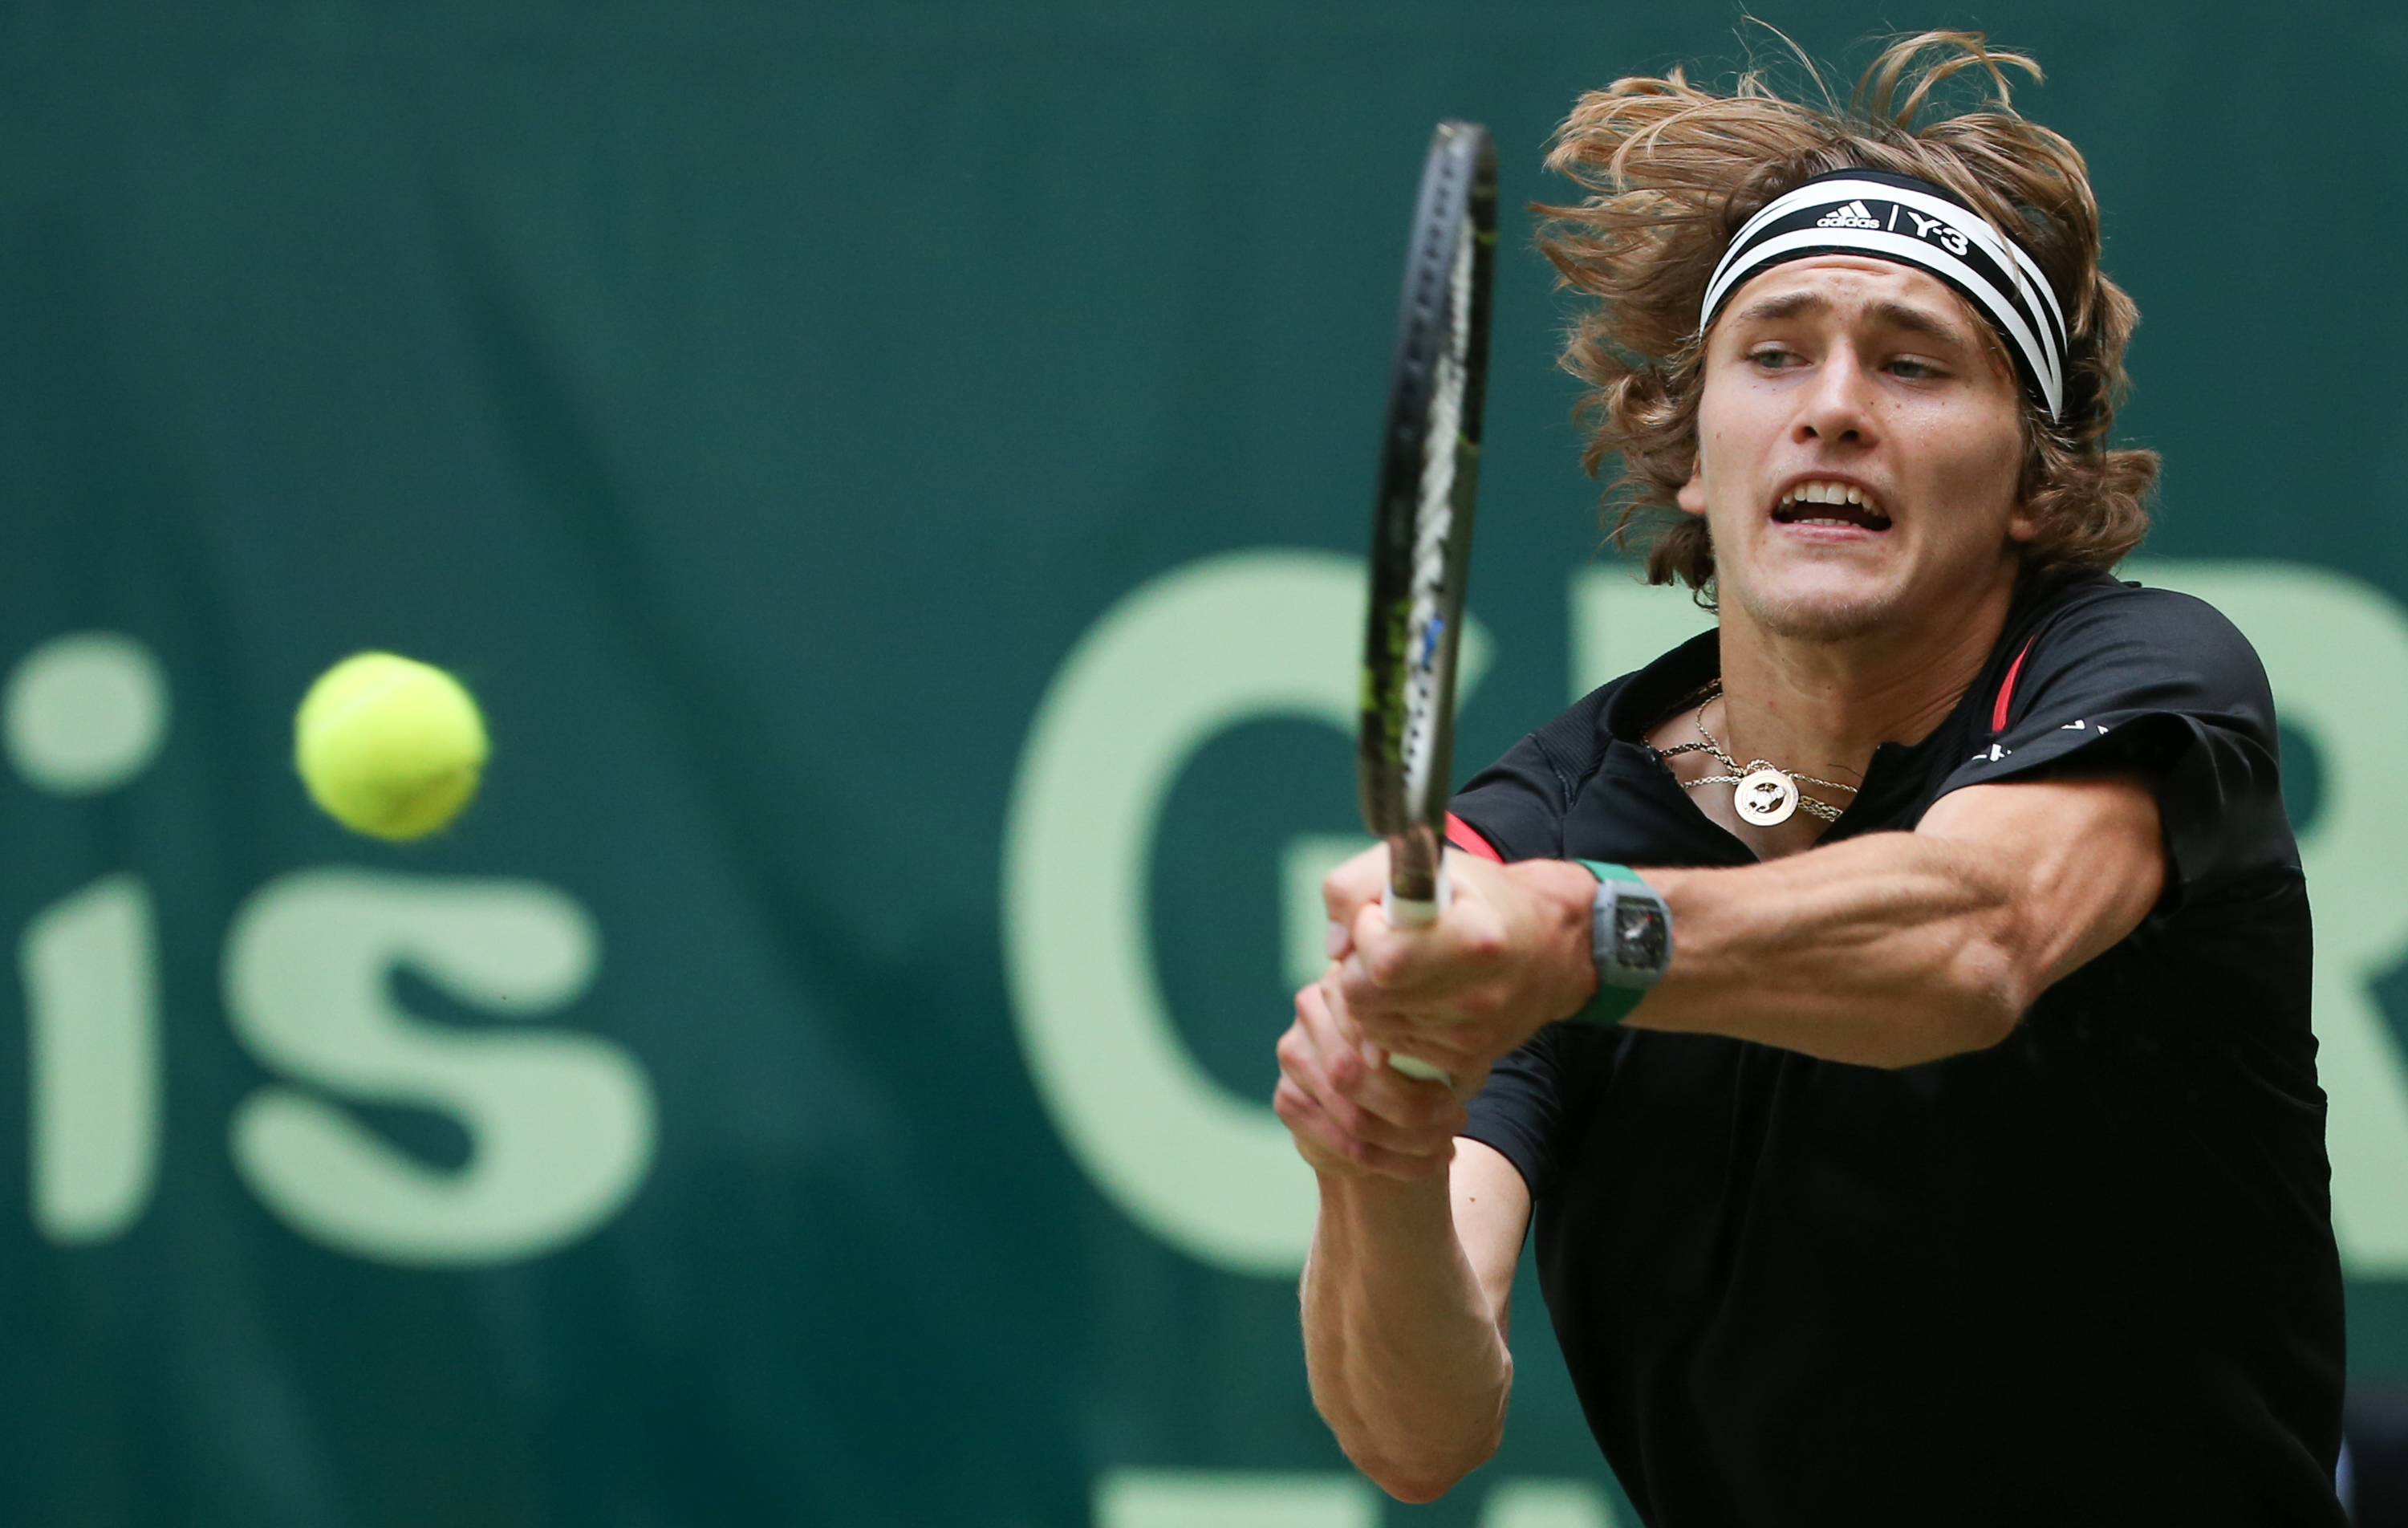 Germany's Alexander Zverev returns the ball to Germany's Florian Mayer, during the final match of the Gerry Weber Open ATP tennis tournament in Halle, western Germany, Sunday June 19, 2016.  (Friso Gentsch/dpa via AP)